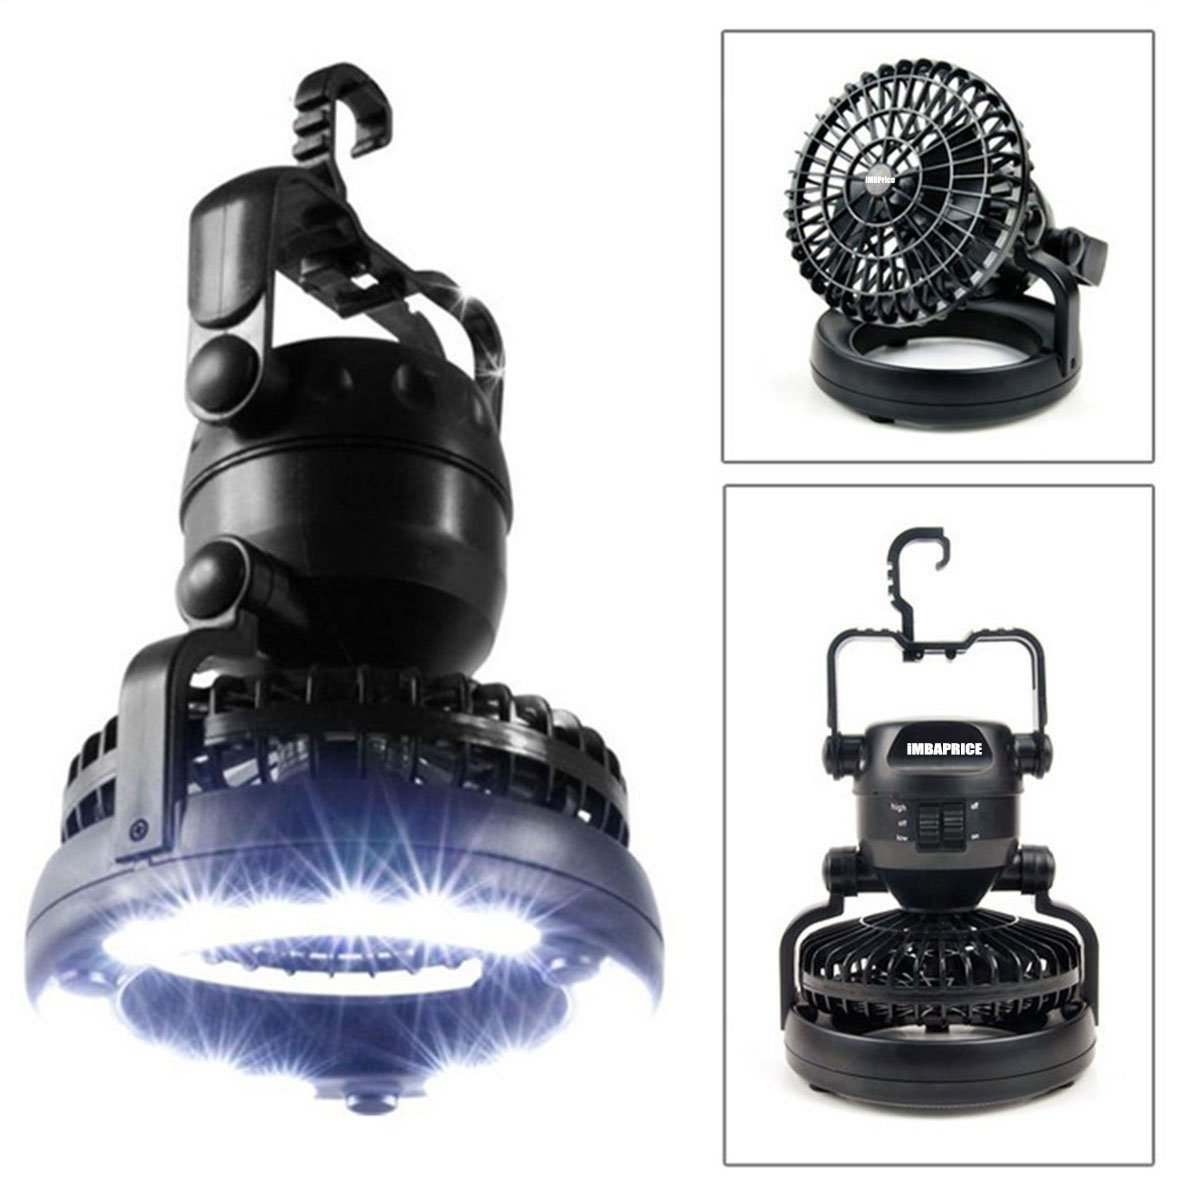 iMBAPrice Deluxe Outdoor Camping Lantern 2-In-1 Combo 18 Super Bright LED Light and Fan (CFAN-LED) Retail Box